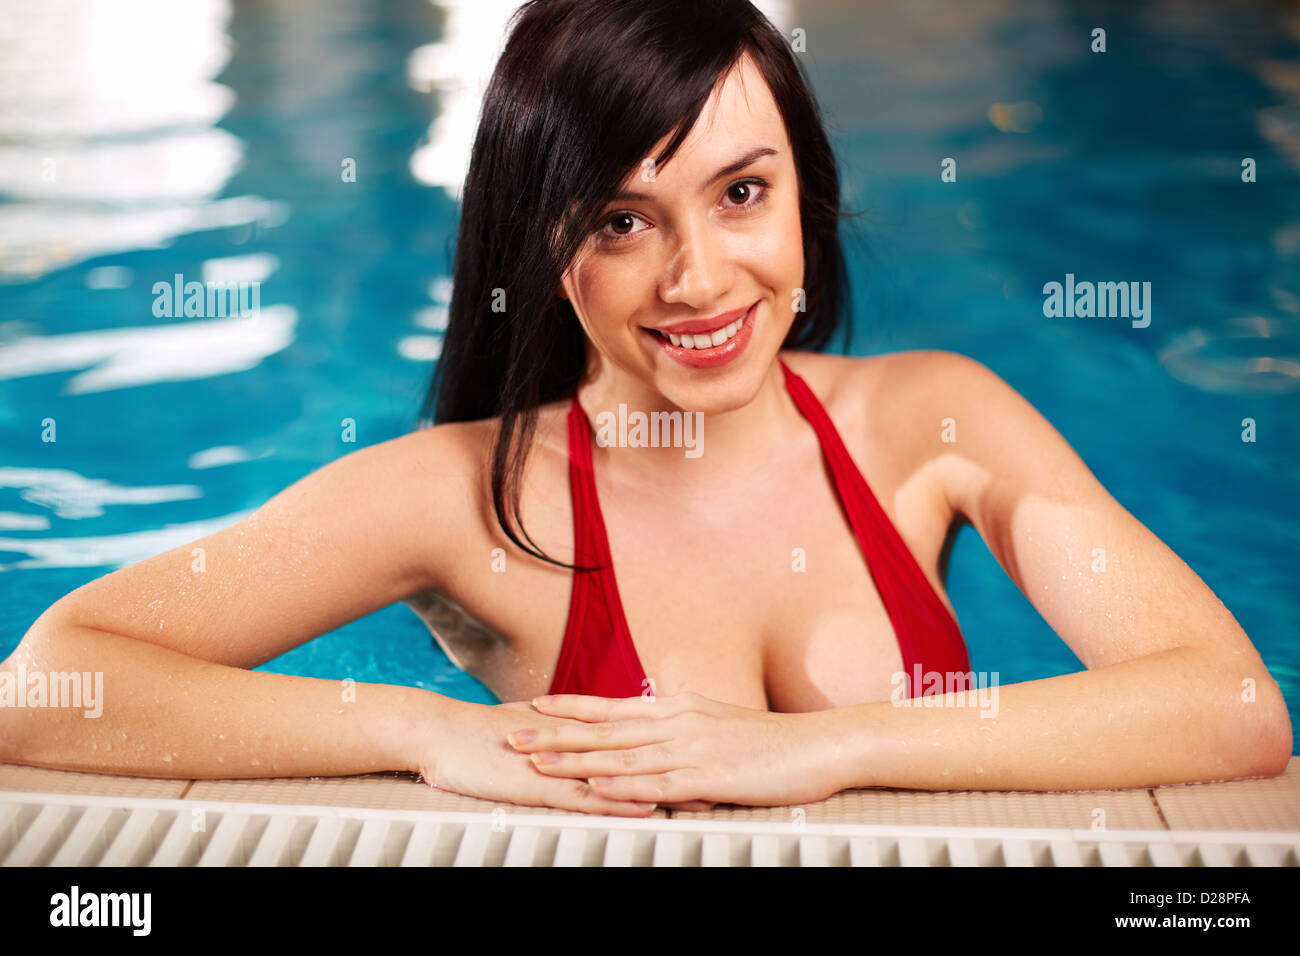 Portrait of lovely woman in bikini looking at camera in swimming pool - Stock Image